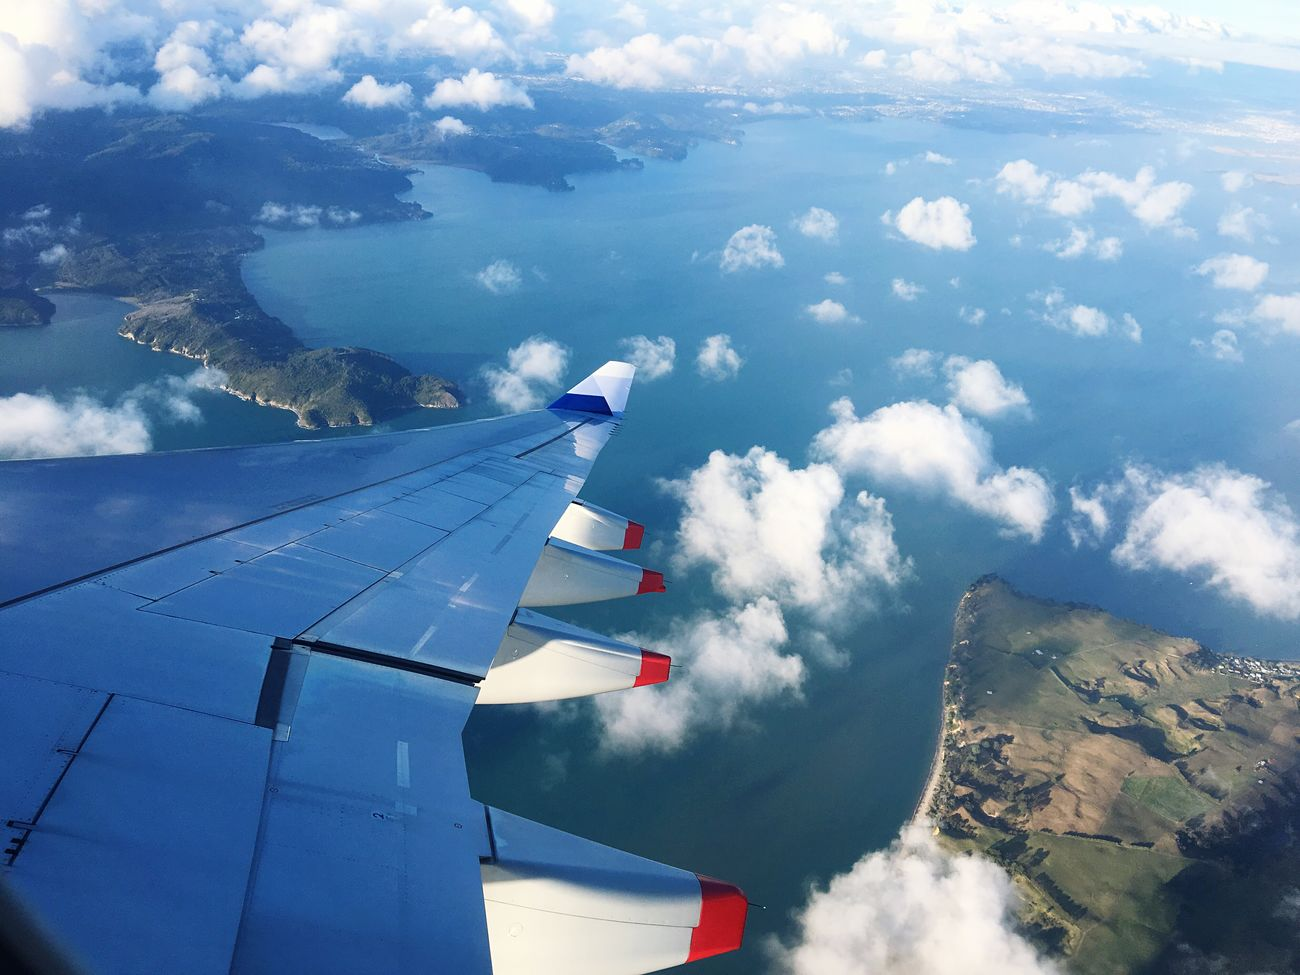 Sky Cloud - Sky Transportation Flying Airplane Nature No People Day Beauty In Nature Outdoors Air Vehicle Mountain Airplane Wing